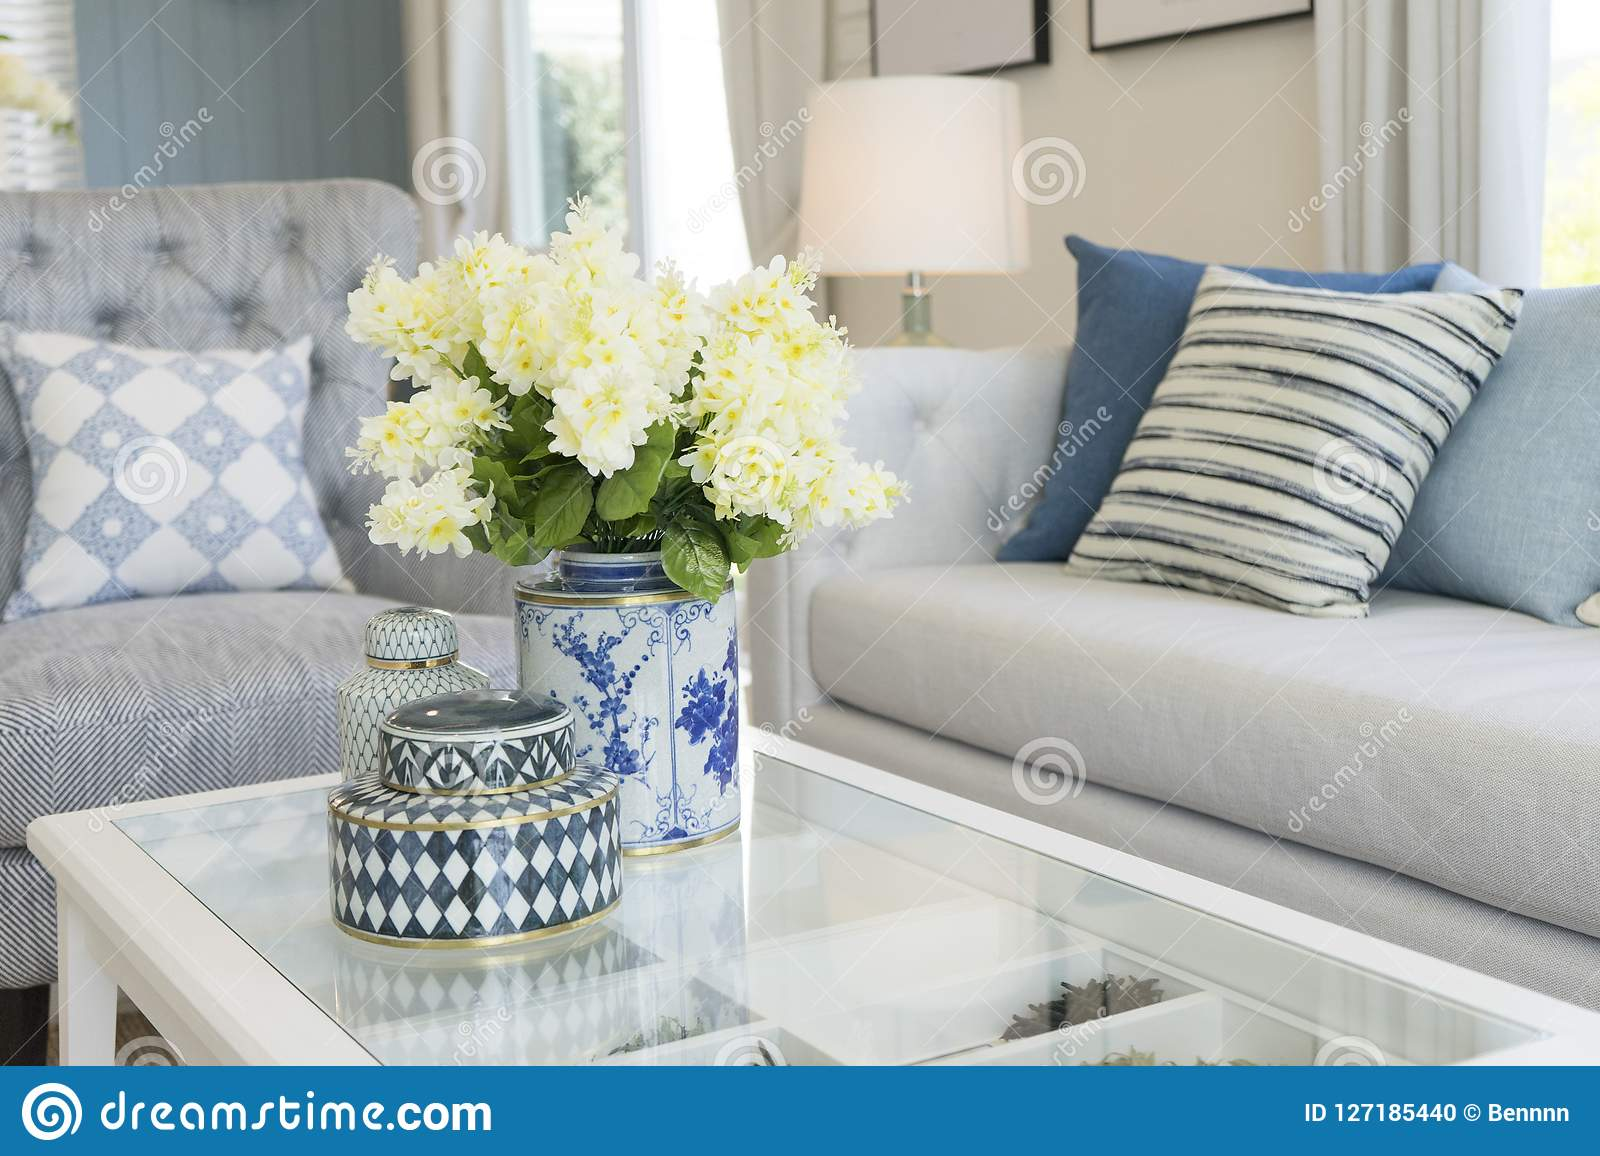 White Flower In A Vase On Table In Contemporary Living Room Stock